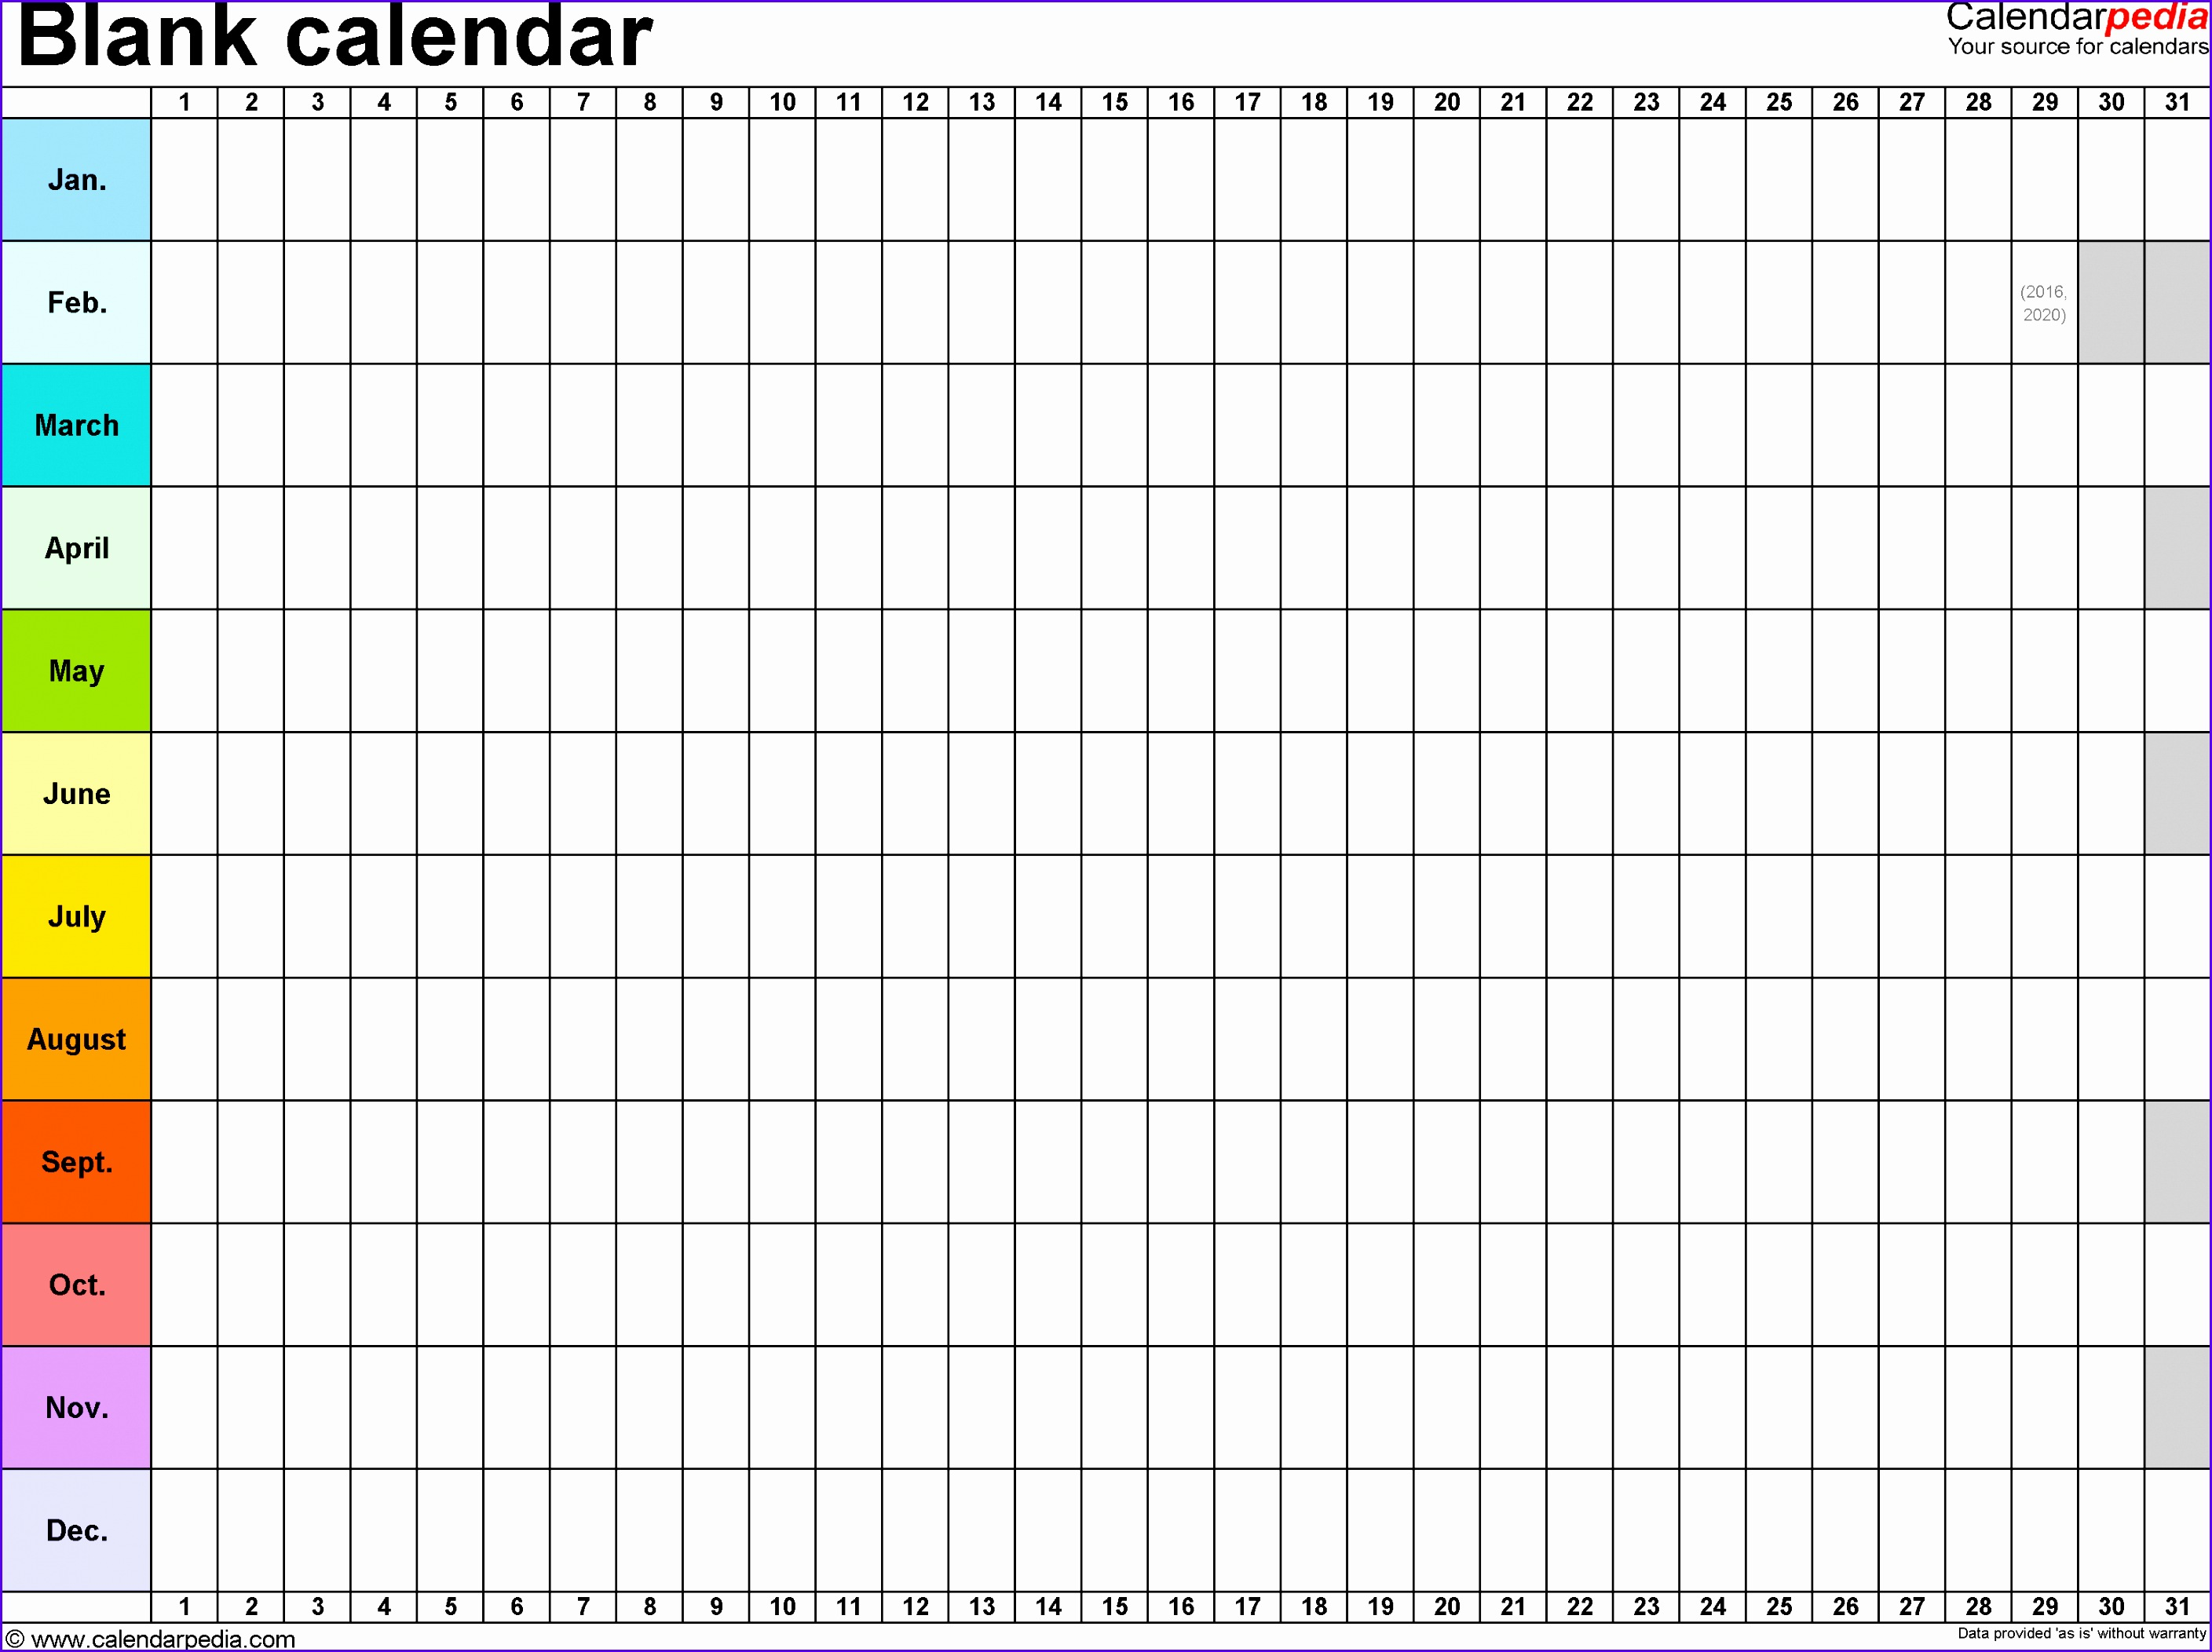 Free Yearly Blank Calendar Template – Printable Blank Yearly Calendars 28172104